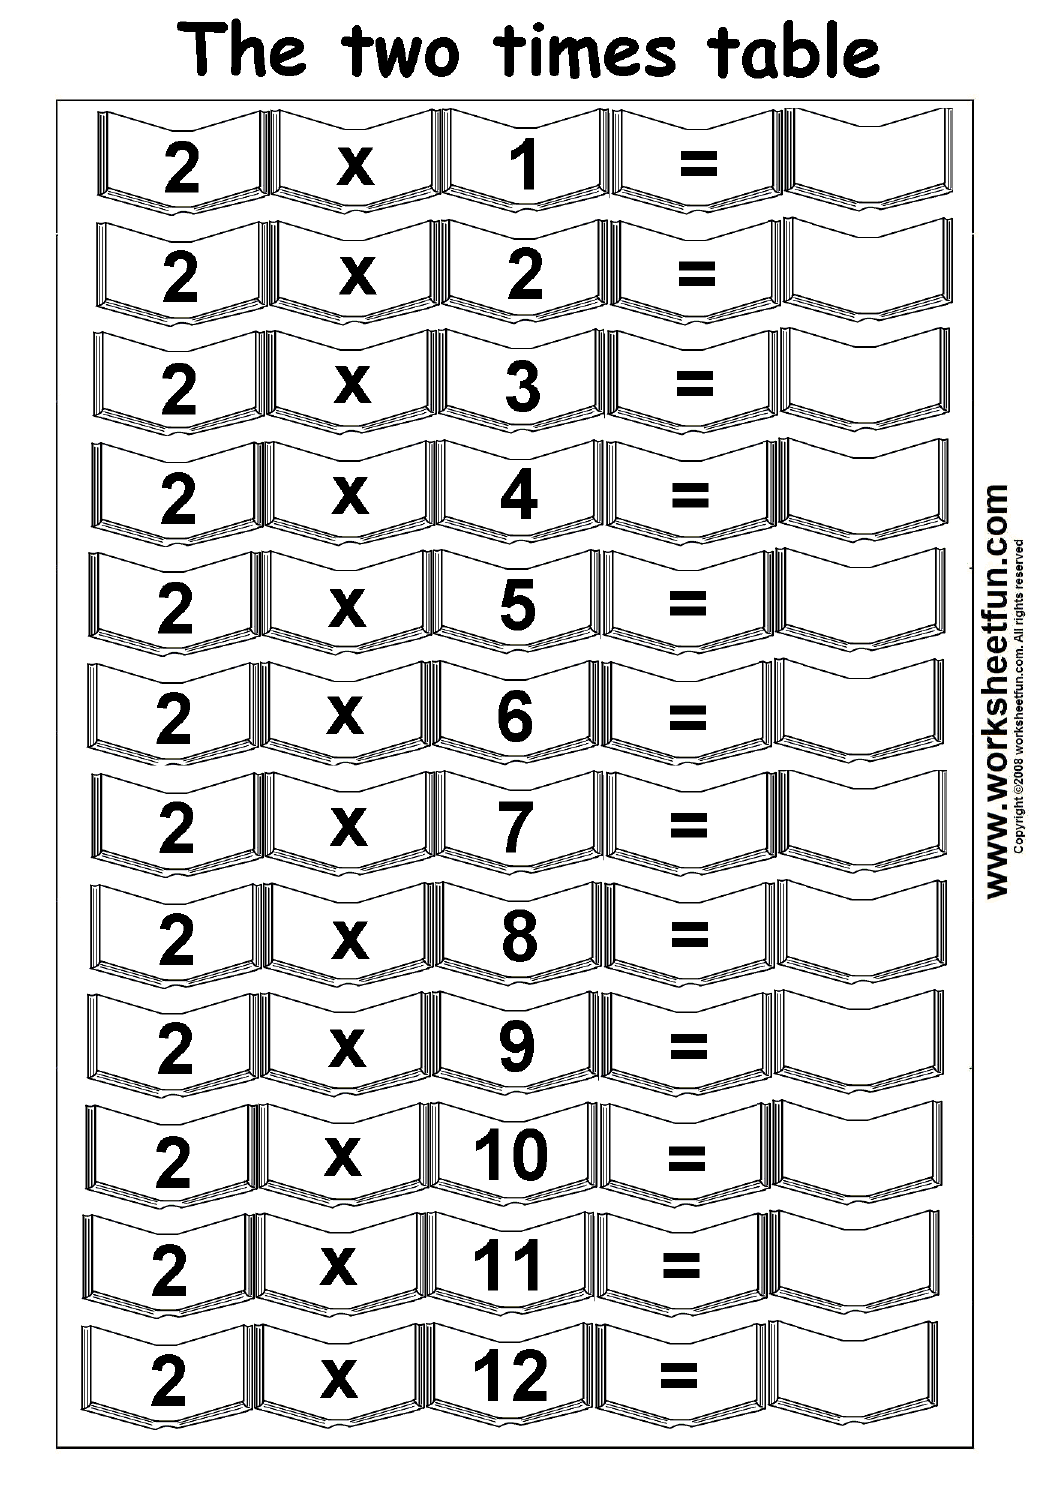 Multiplication Times Tables Worksheets – 2, 3, 4 & 5 Times Tables